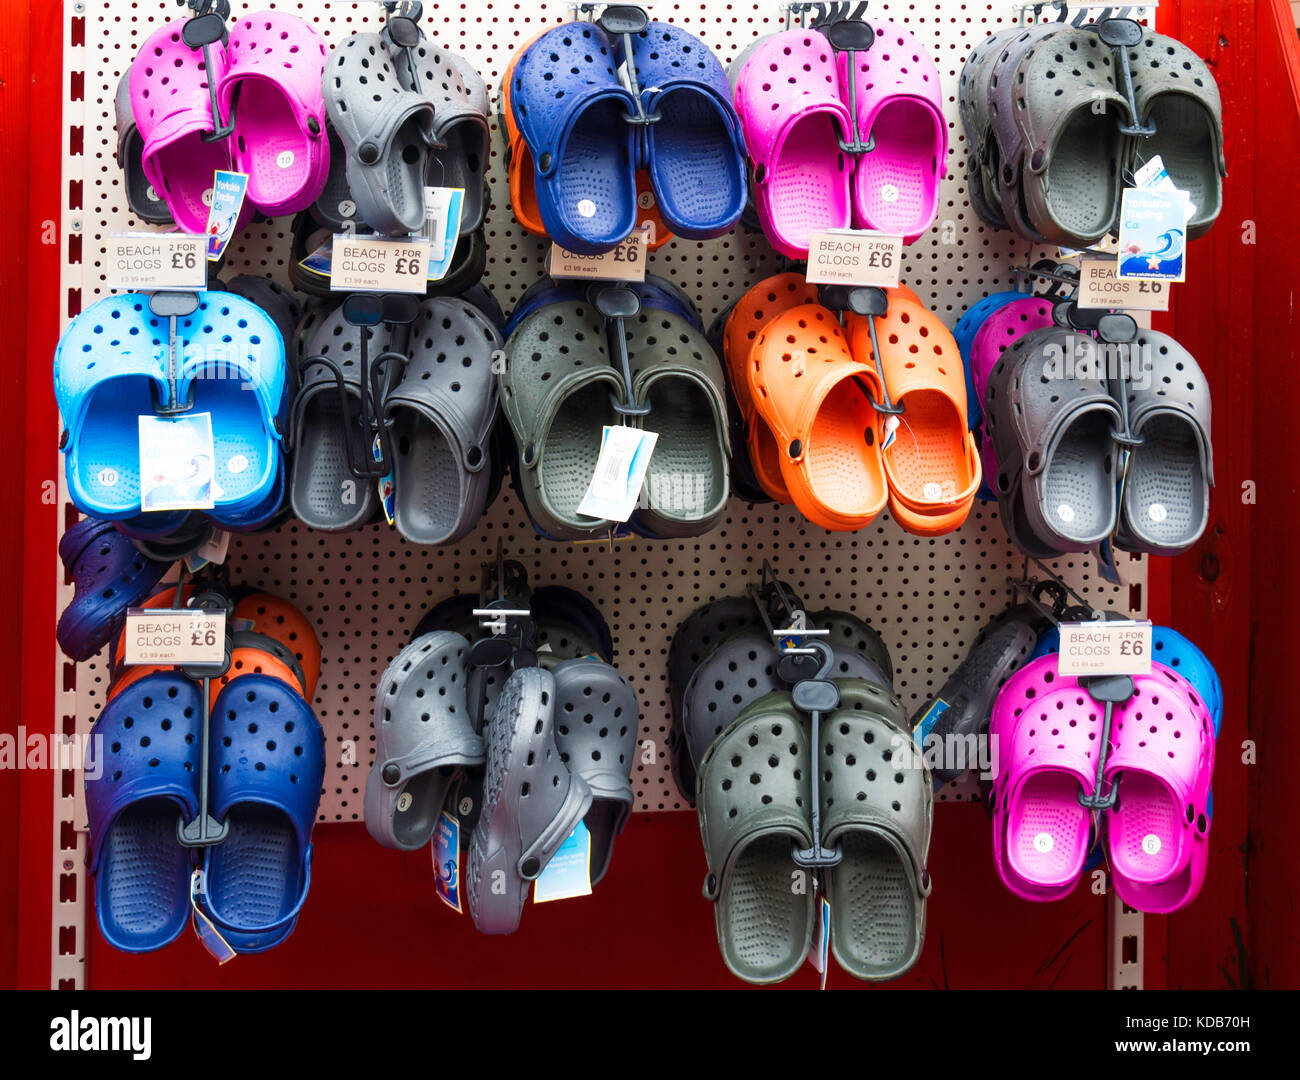 Plastic shoes, or Beach Clogs on sale at a tourist shop in North Yorkshire - Stock Image